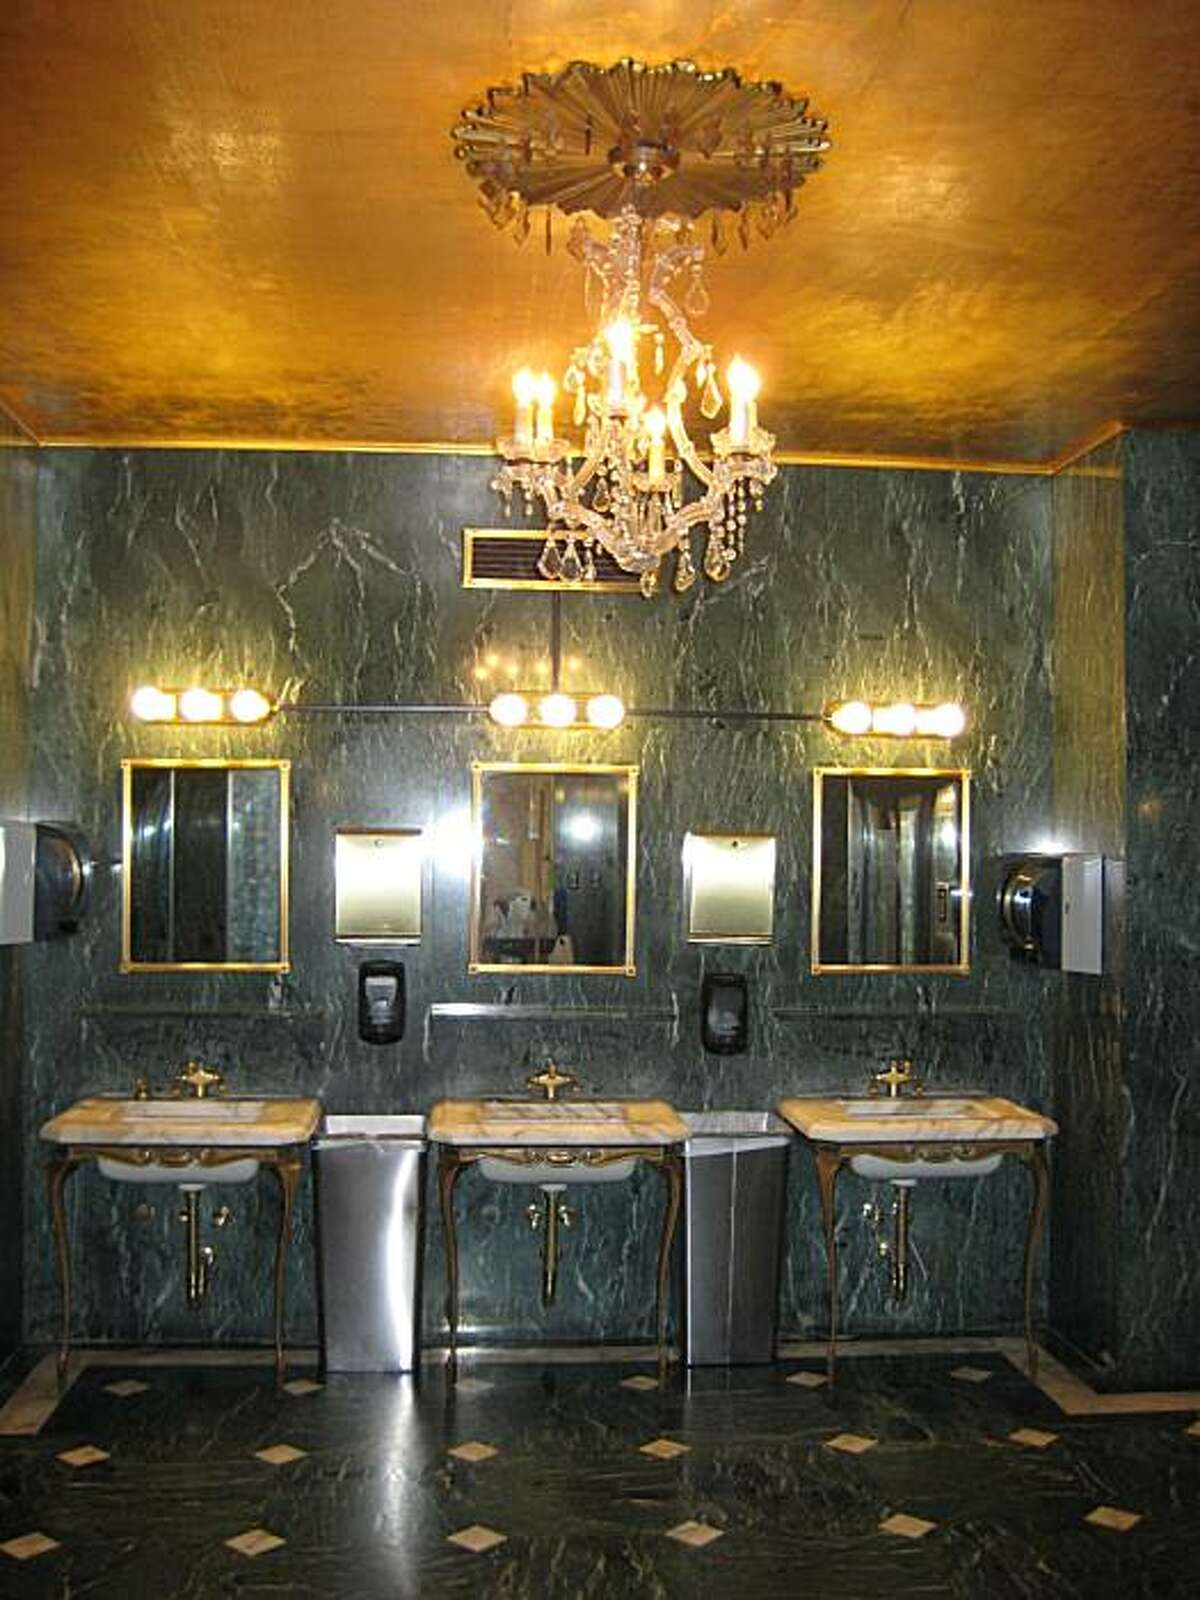 Sixth floor ladies restroom of Macy's Union Square is one of 10 finalists in the annual Best Public Restroom in America contest.